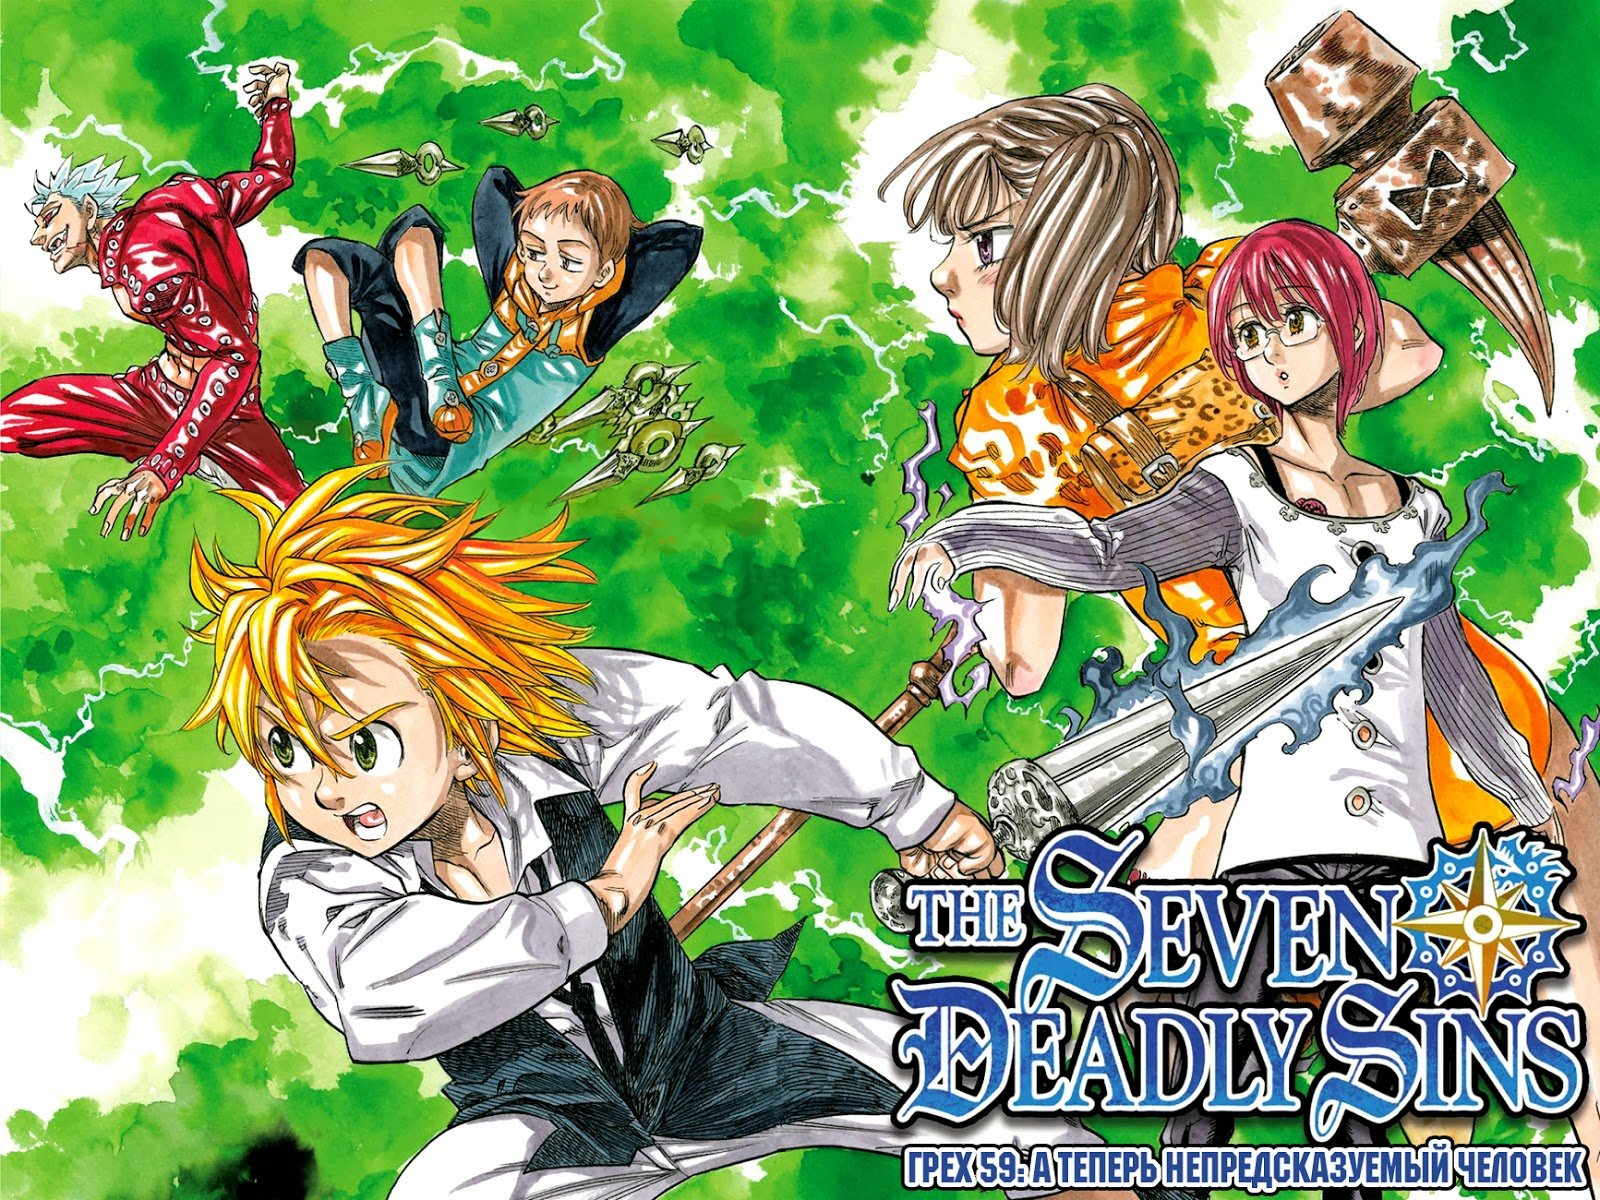 High resolution The Seven 7 Deadly Sins hd 1600x1200 wallpaper ID:281342 for computer